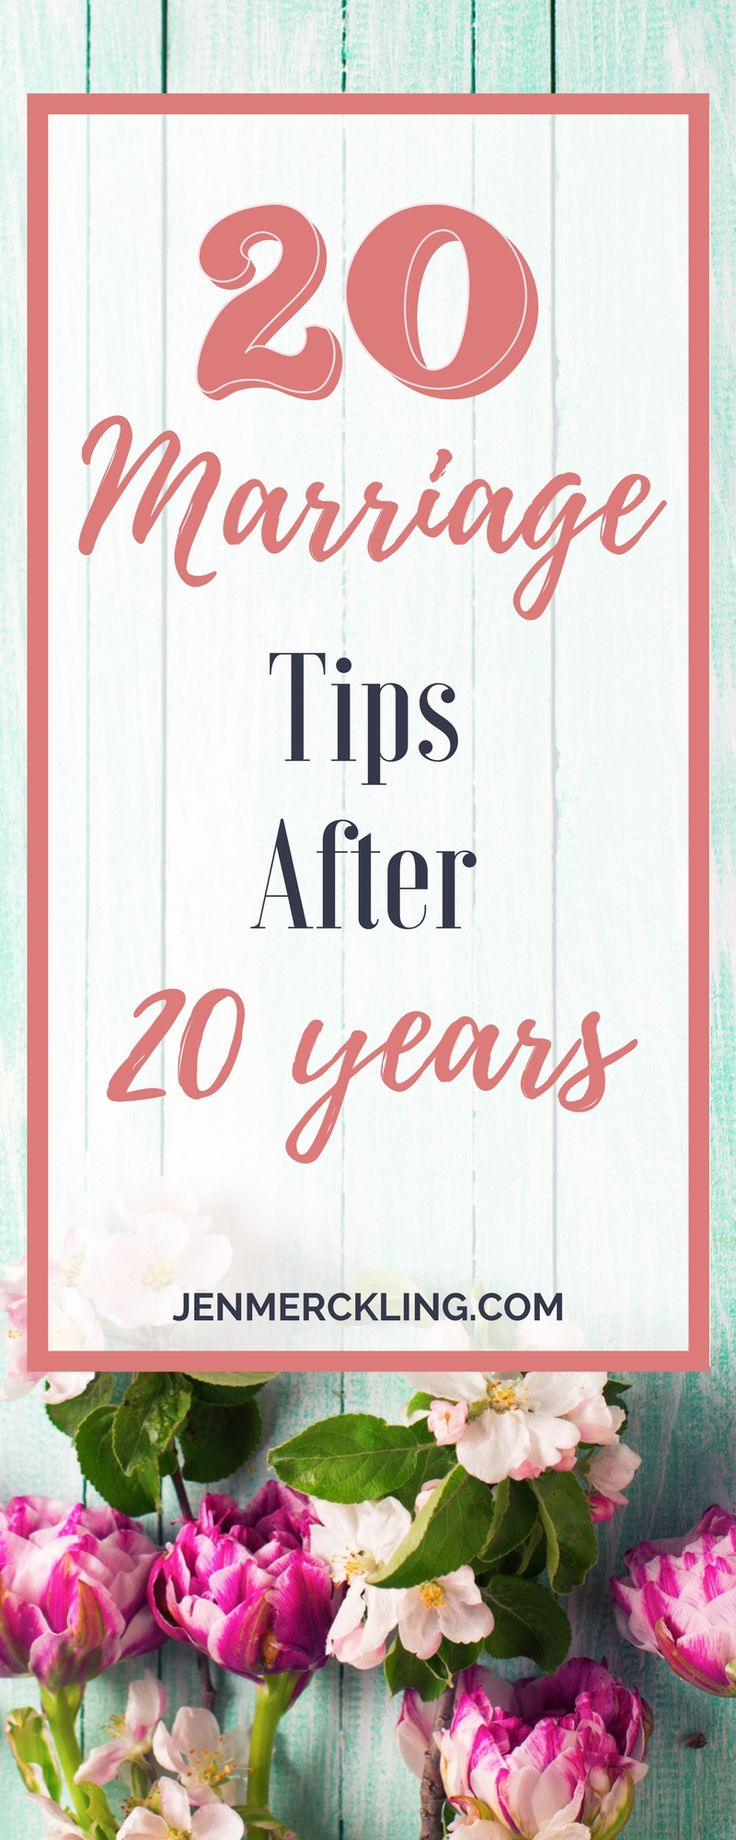 Last summer we celebrated our 20th Wedding Anniversary, and I wanted to share some reflections on what we've learned over the years! Hope some of the tips help you--or at least make you smile!